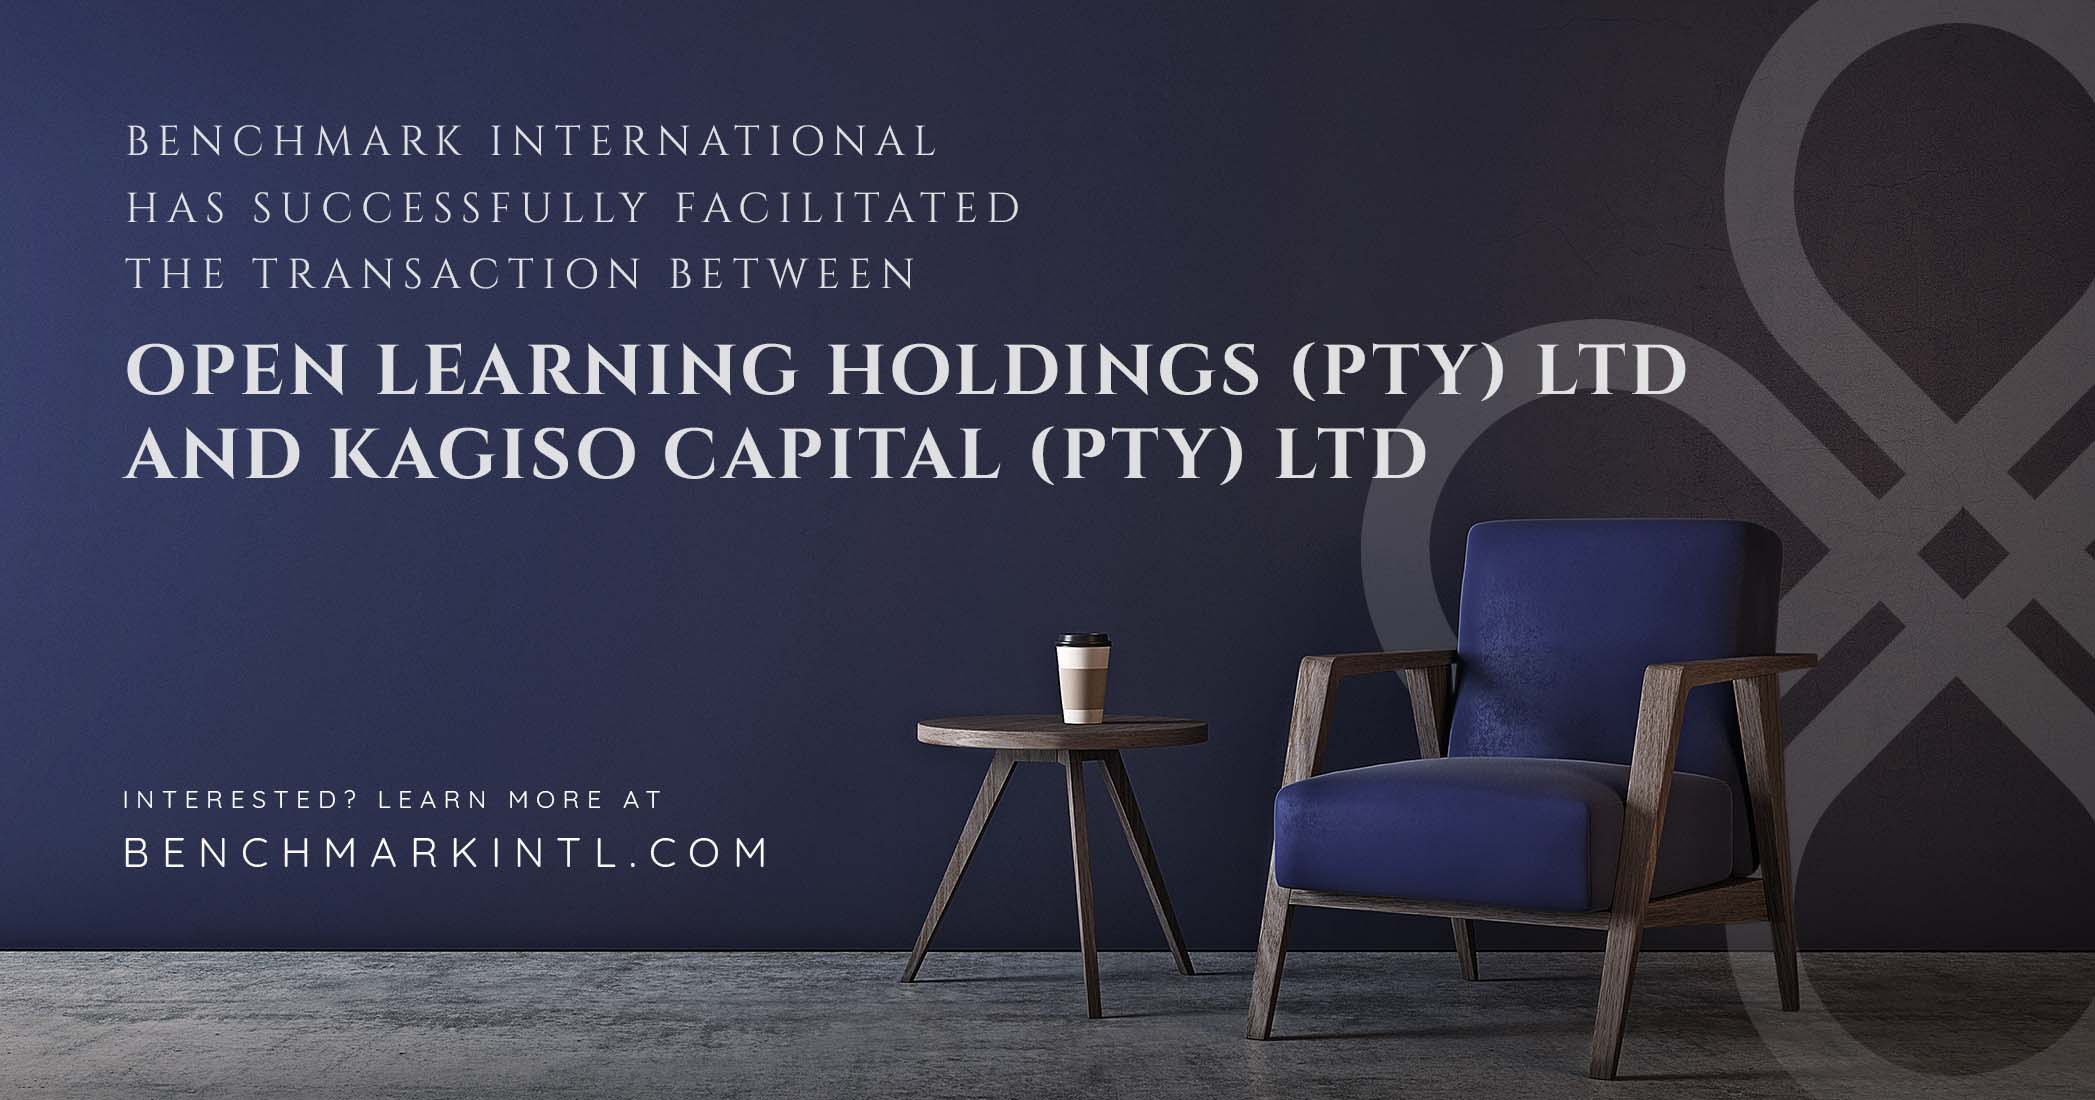 Benchmark International Successfully Facilitated the Transaction Between Open Learning Holdings (PTY) LTD and Kagiso Capital (PTY) LTD